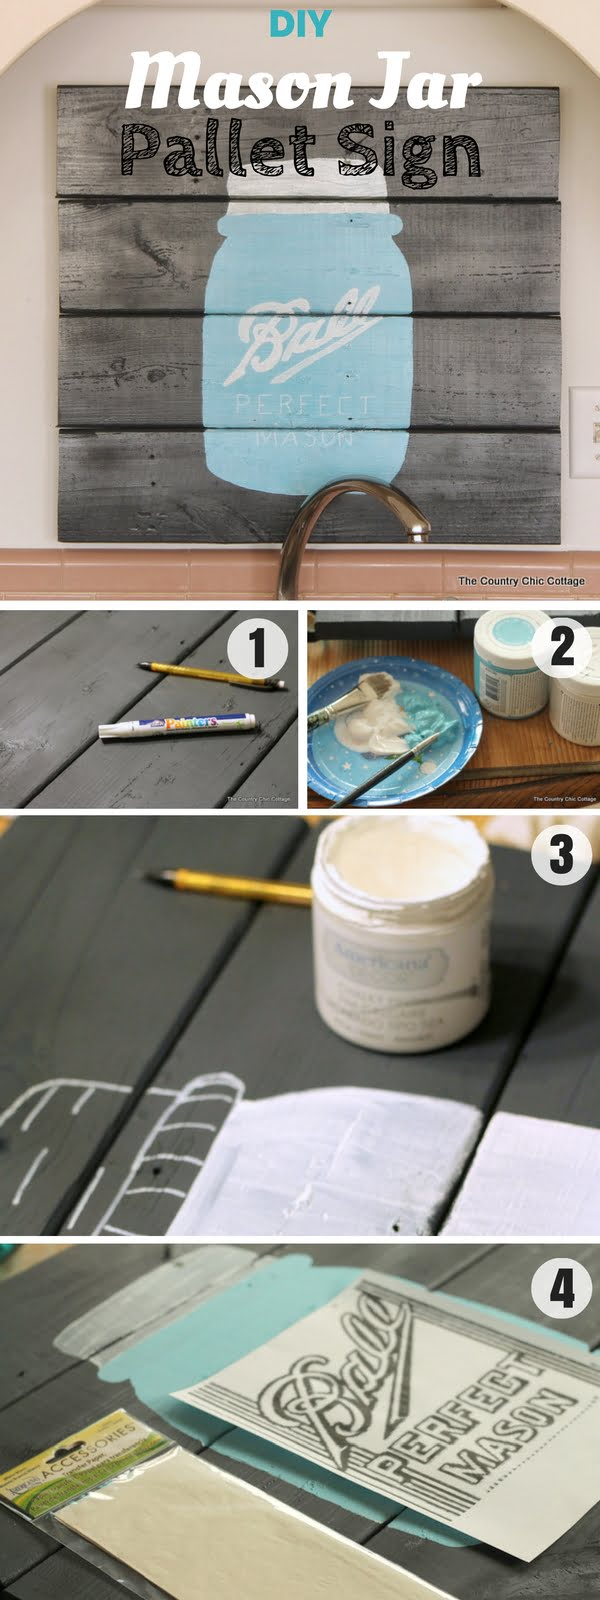 17 Fab DIY Farmhouse Signs You Can Make Yourself - Check out how to make easy DIY Mason Jar Pallet Sign